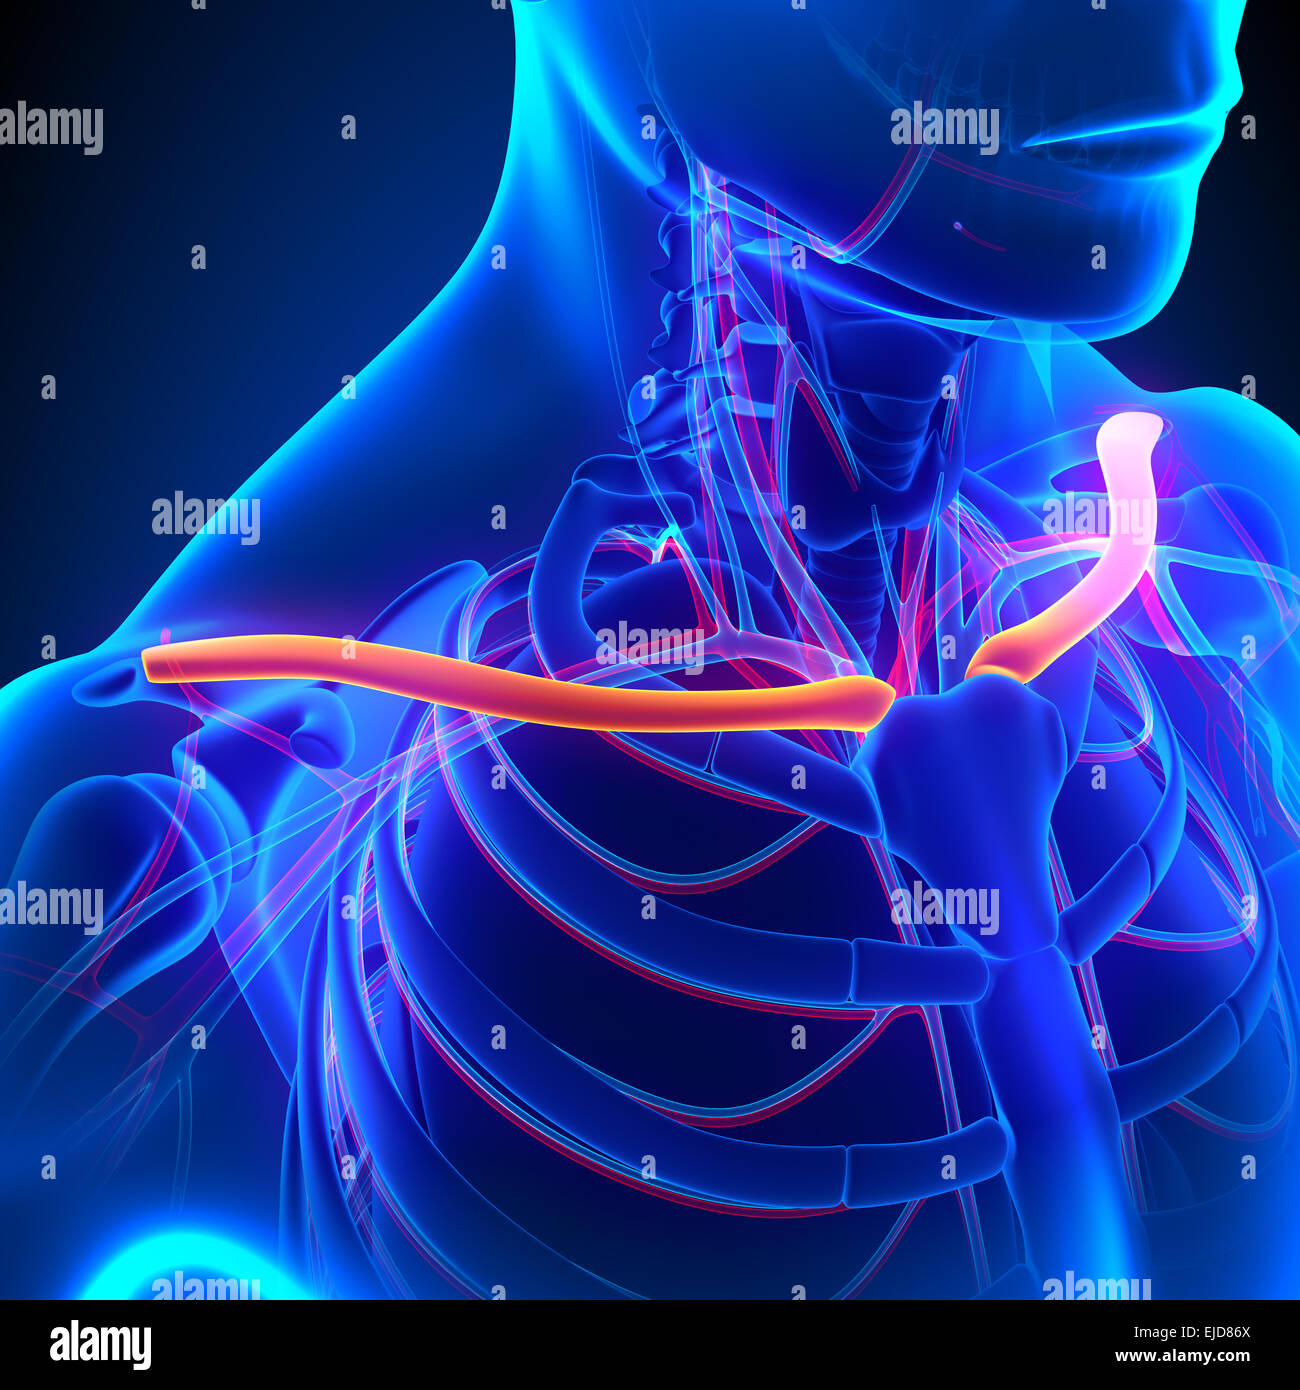 Clavicle Bone Anatomy with Circulatory System Stock Photo: 80197122 ...